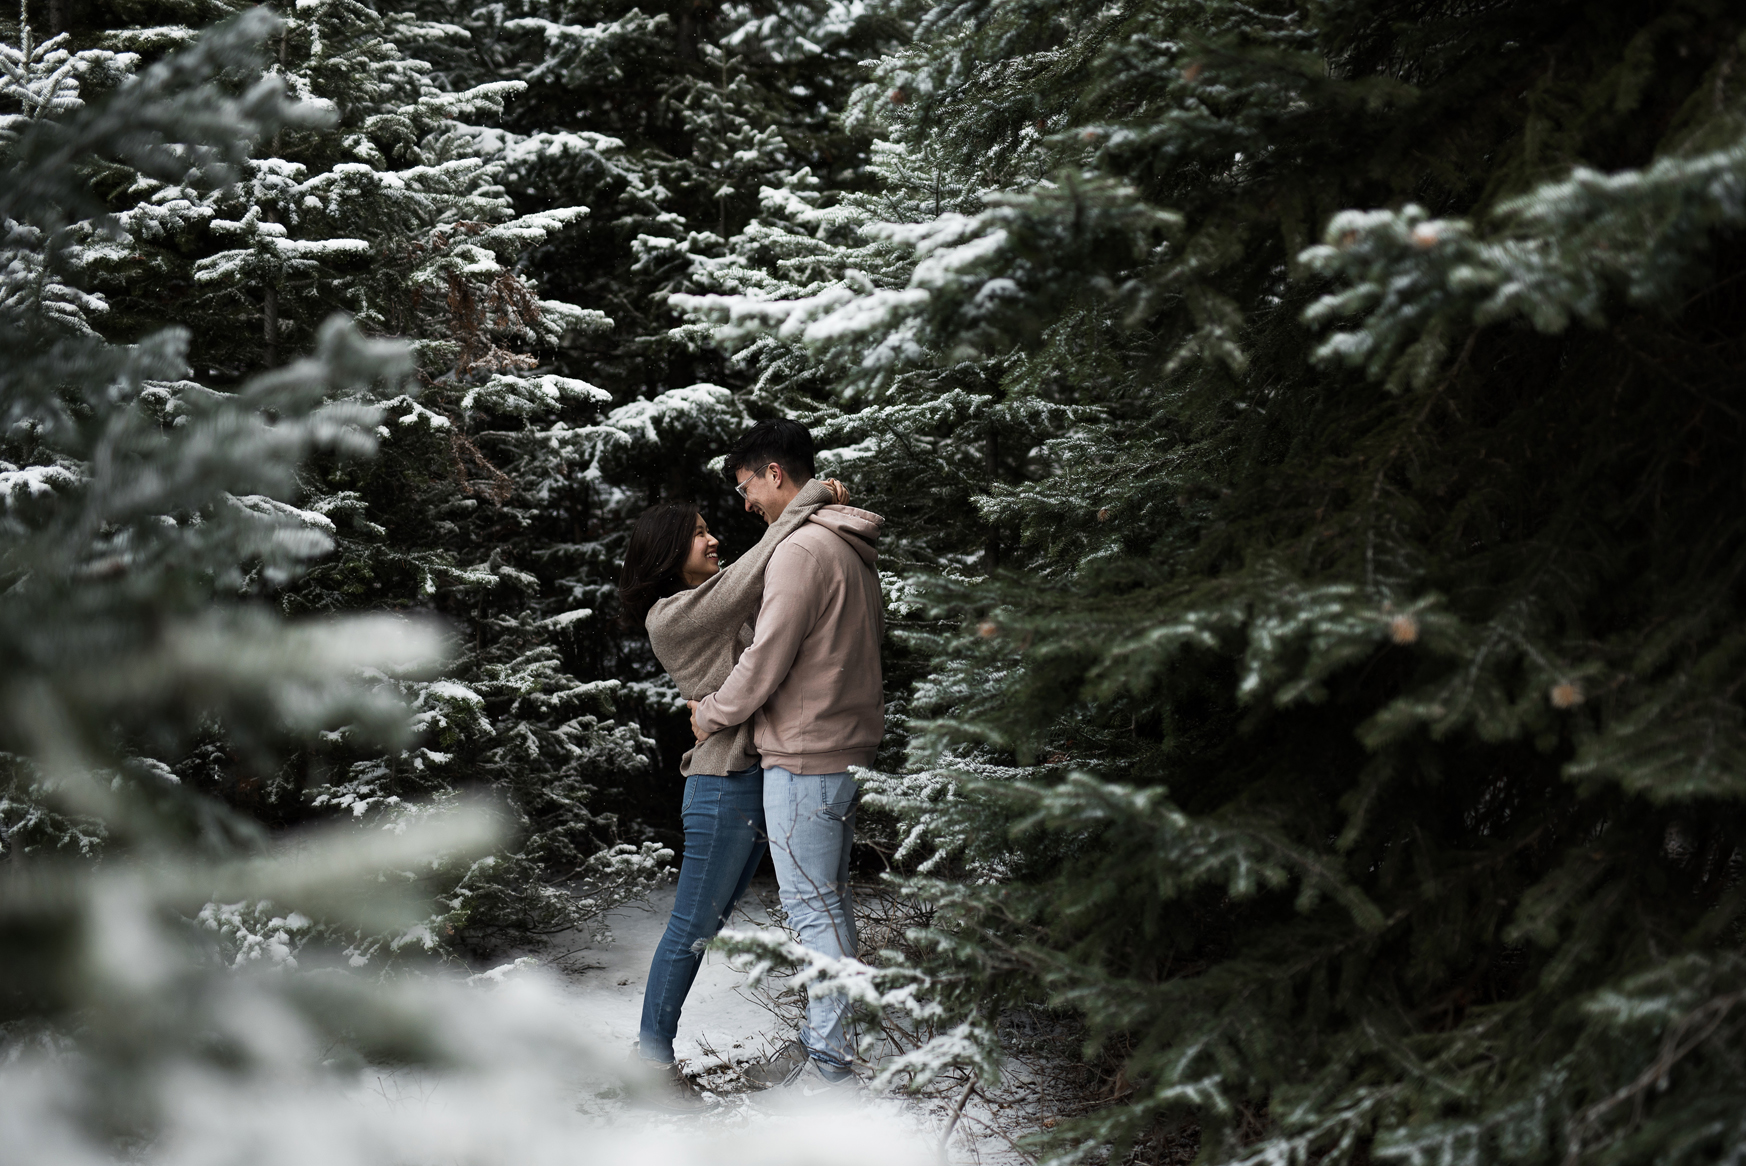 couple cozied up together in snowy mountains